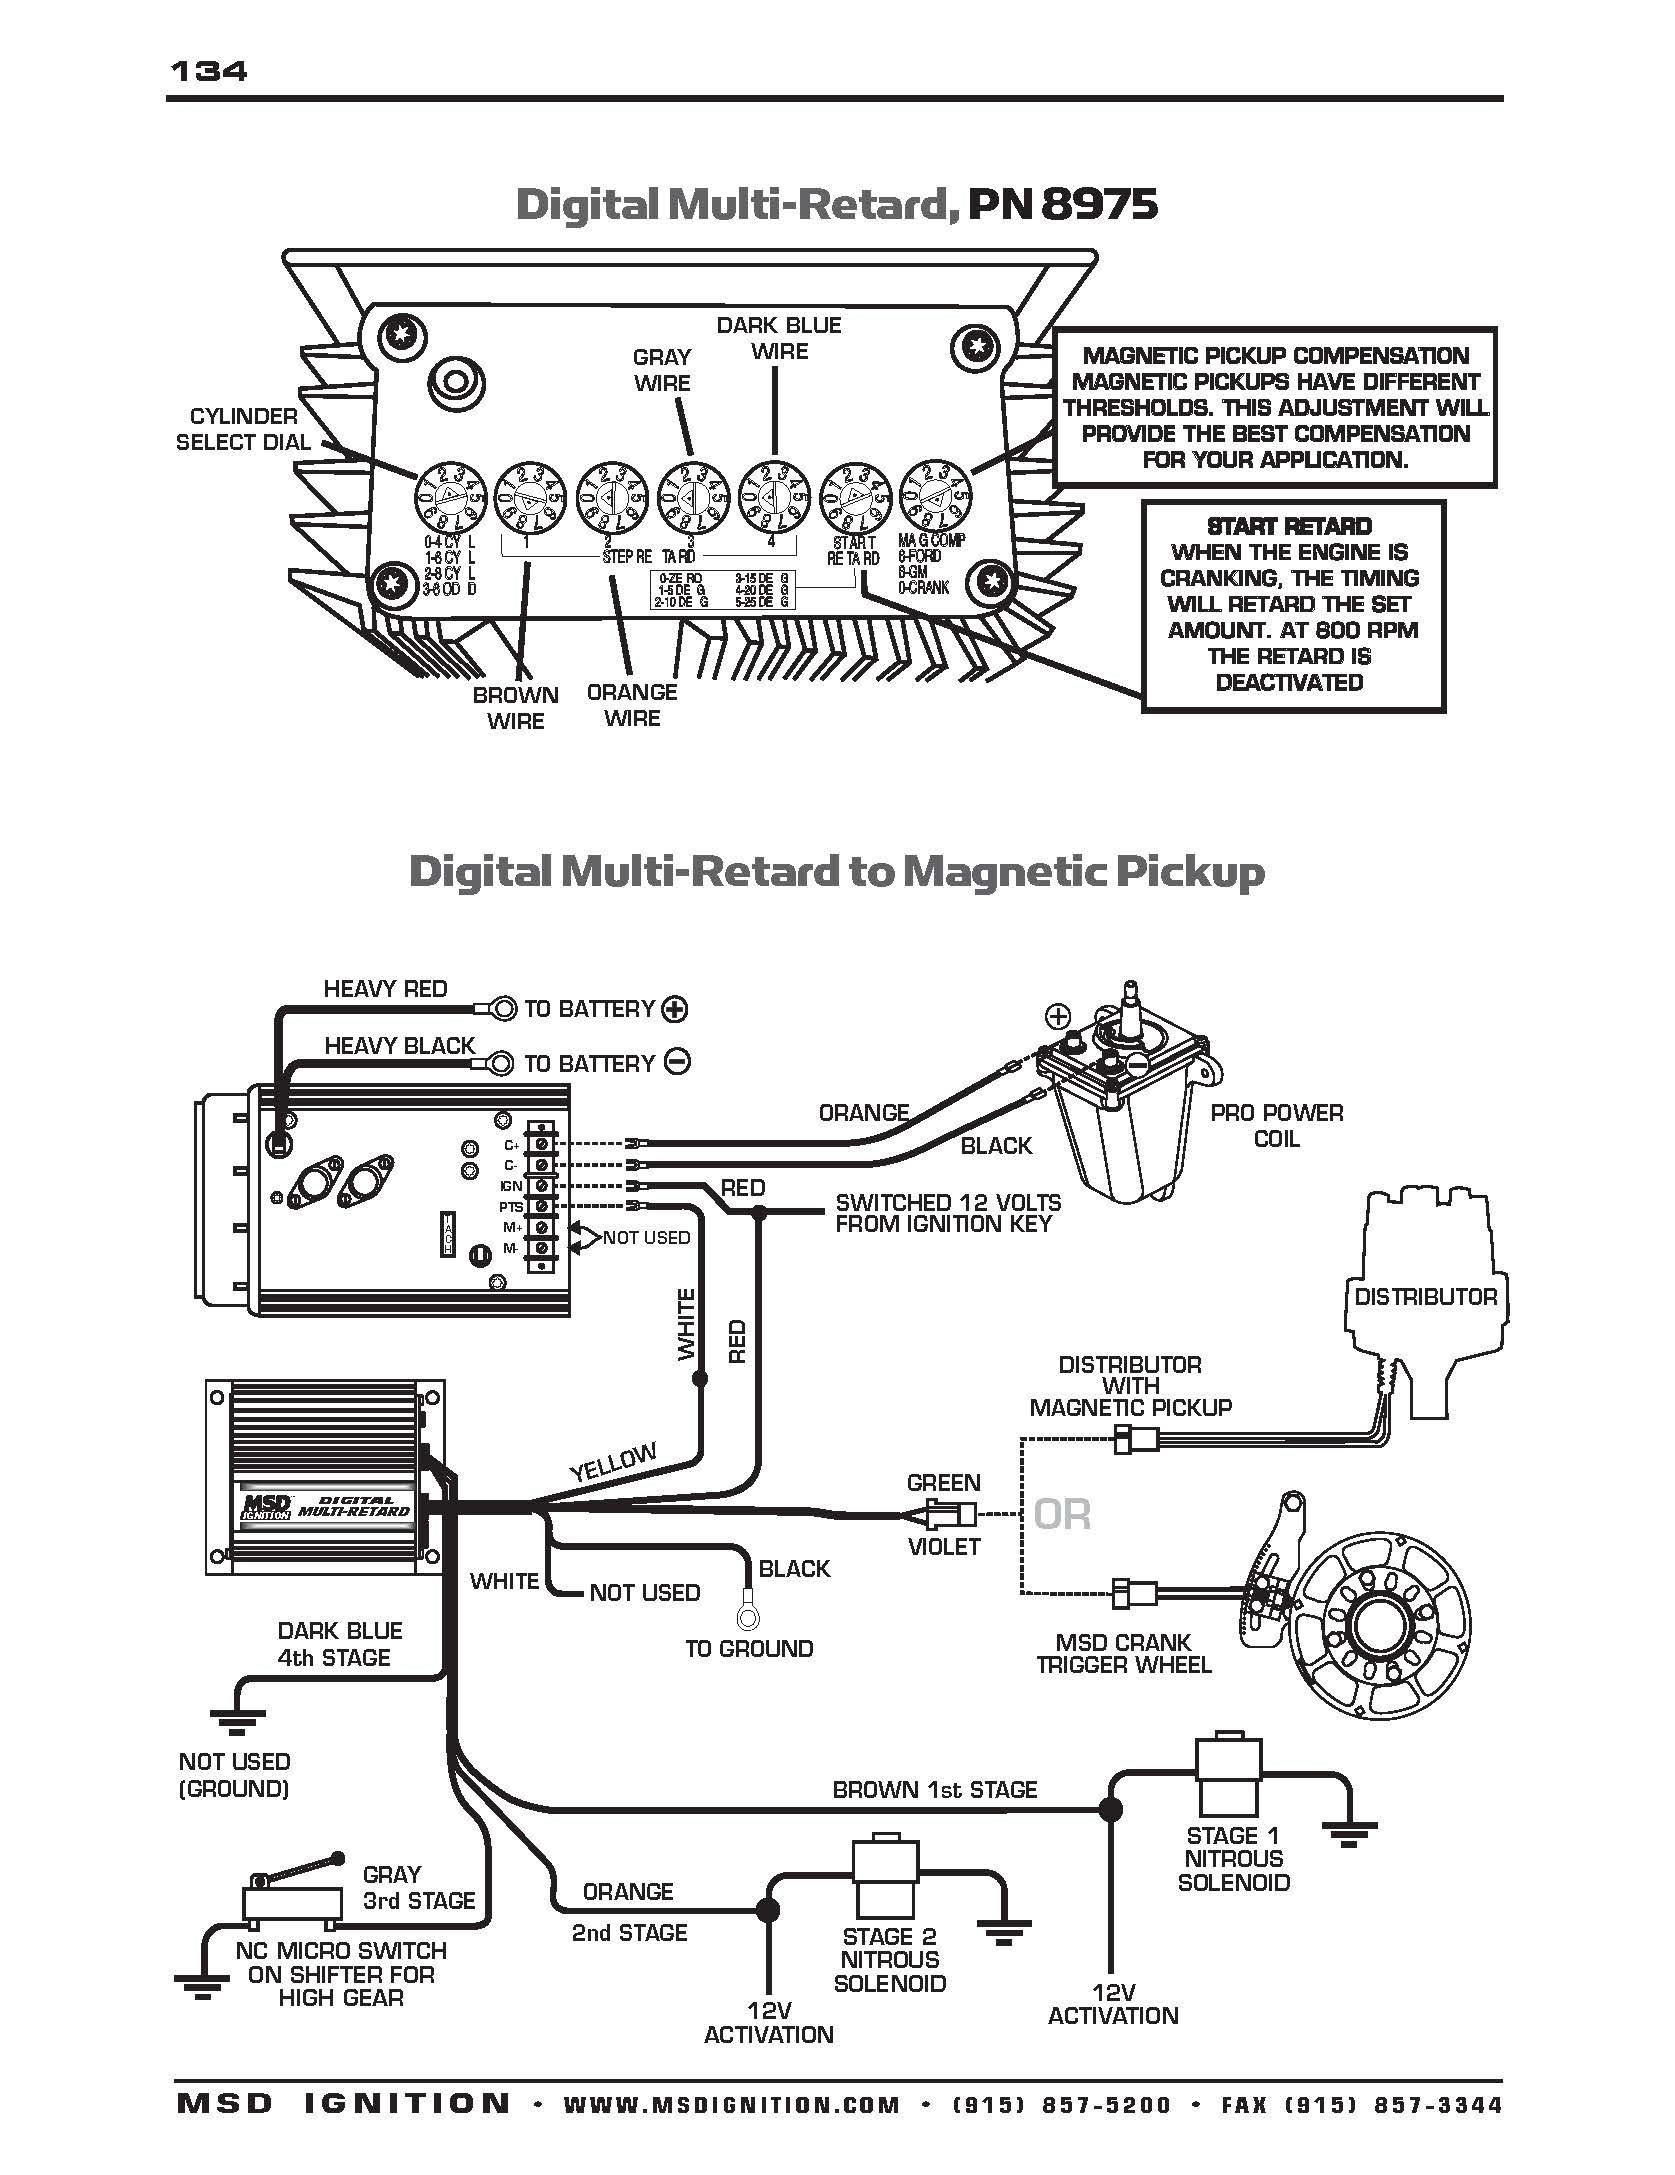 Accel Ignition Wiring Diagram - accel control module wiring ... on